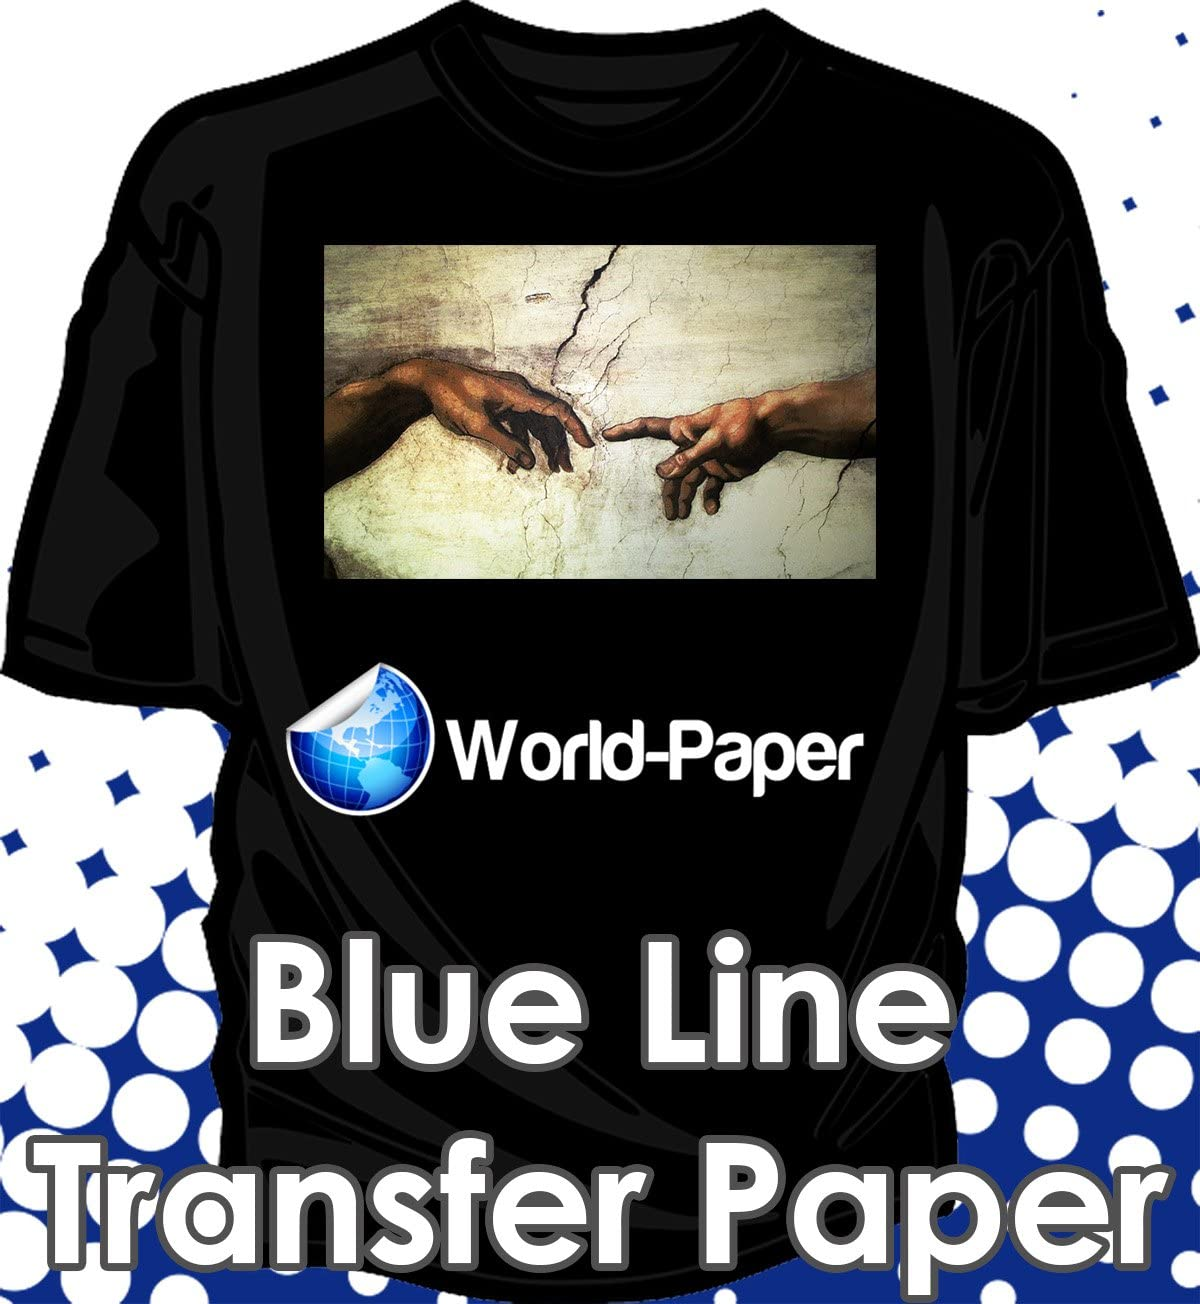 Blue Line Dark Iron On Heat Transfer Paper for Inkjet 11 x 17-35 Sheets